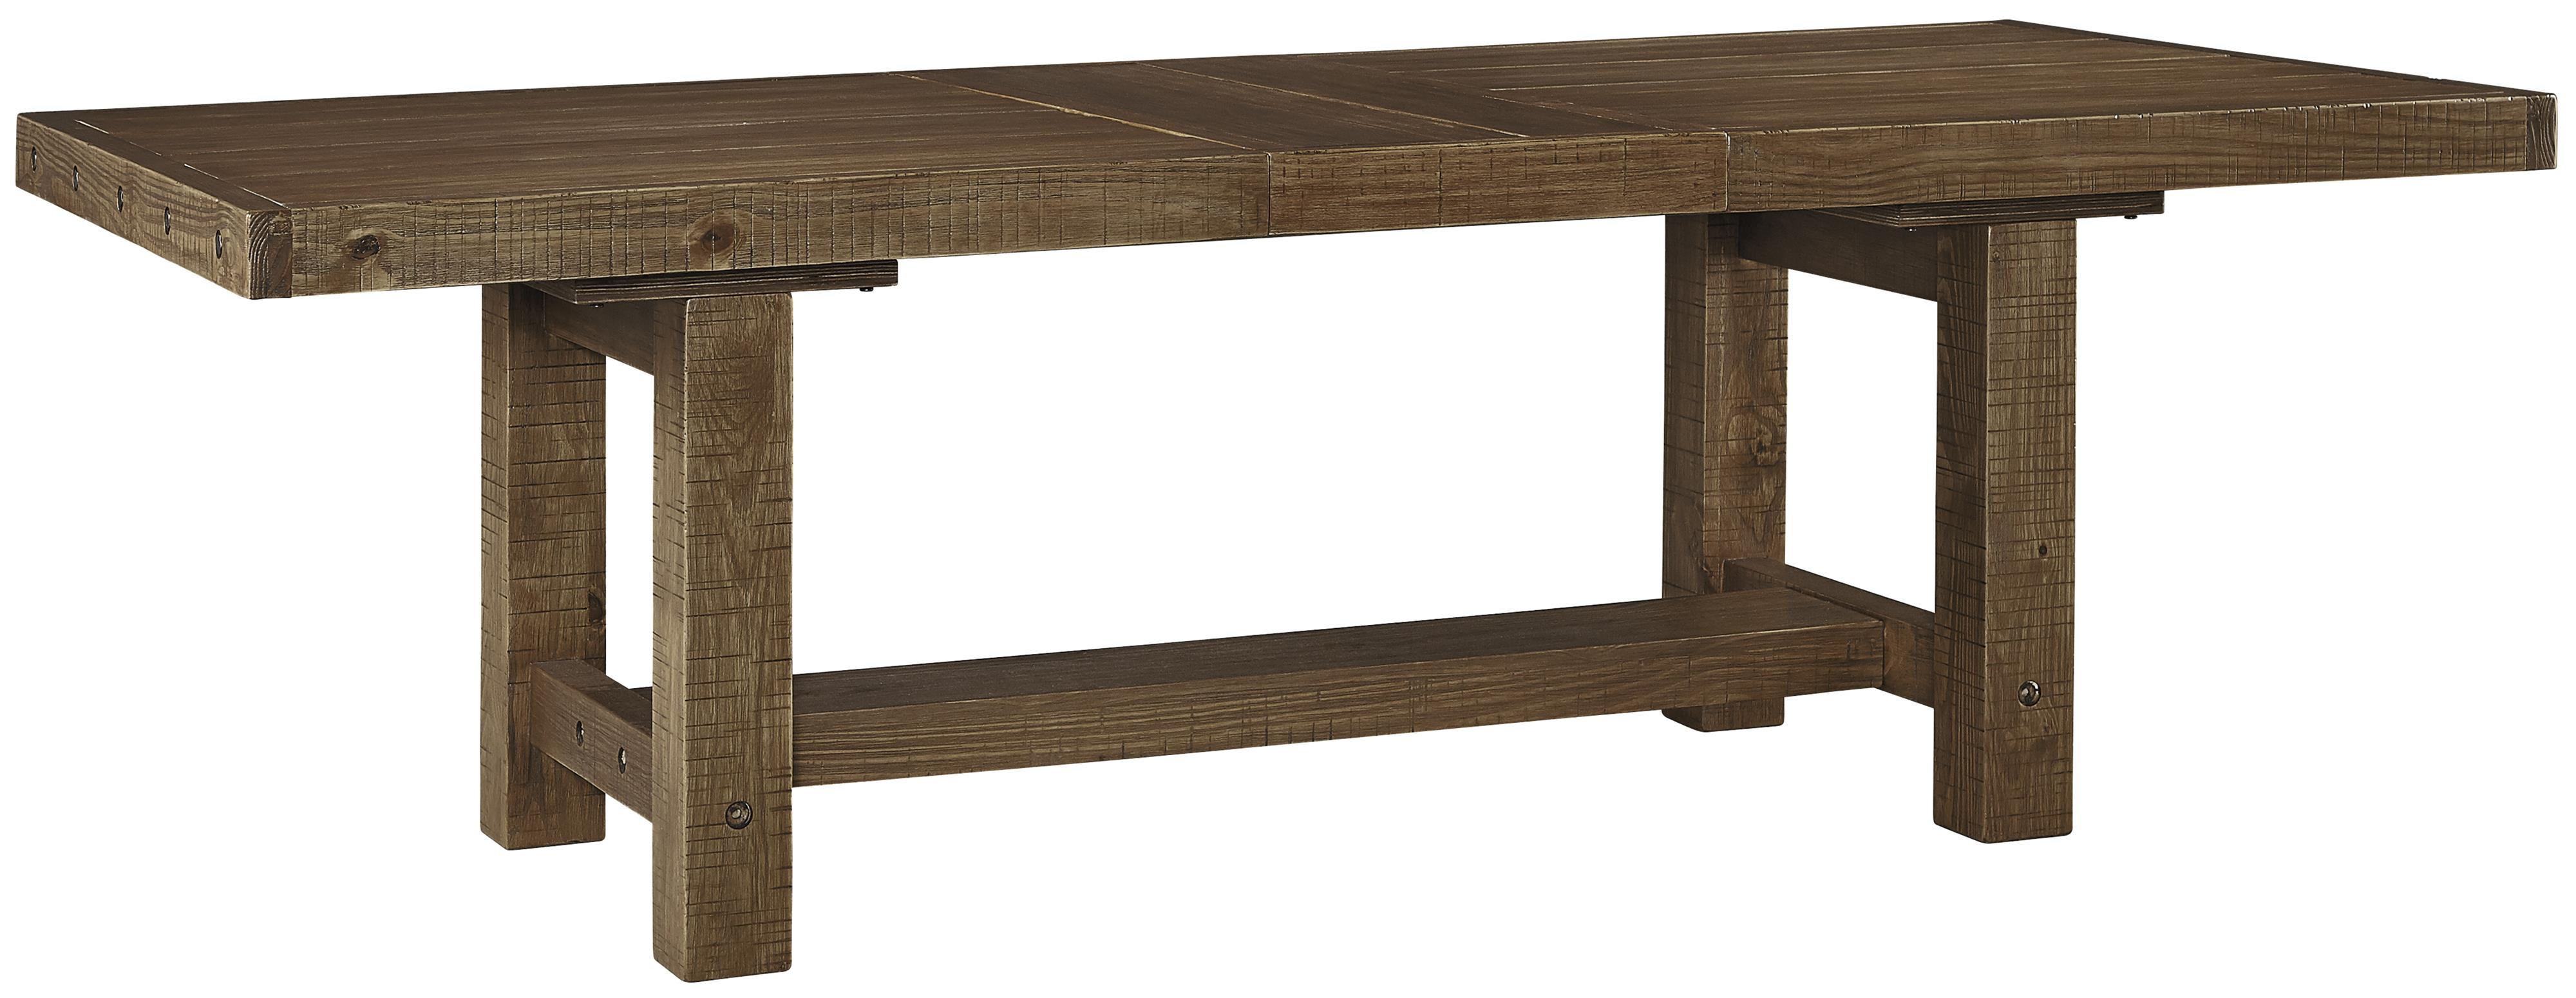 Signature design by ashley tamilo rectangle dining room table with leaf wayside furniture - Rectangle kitchen tables ...